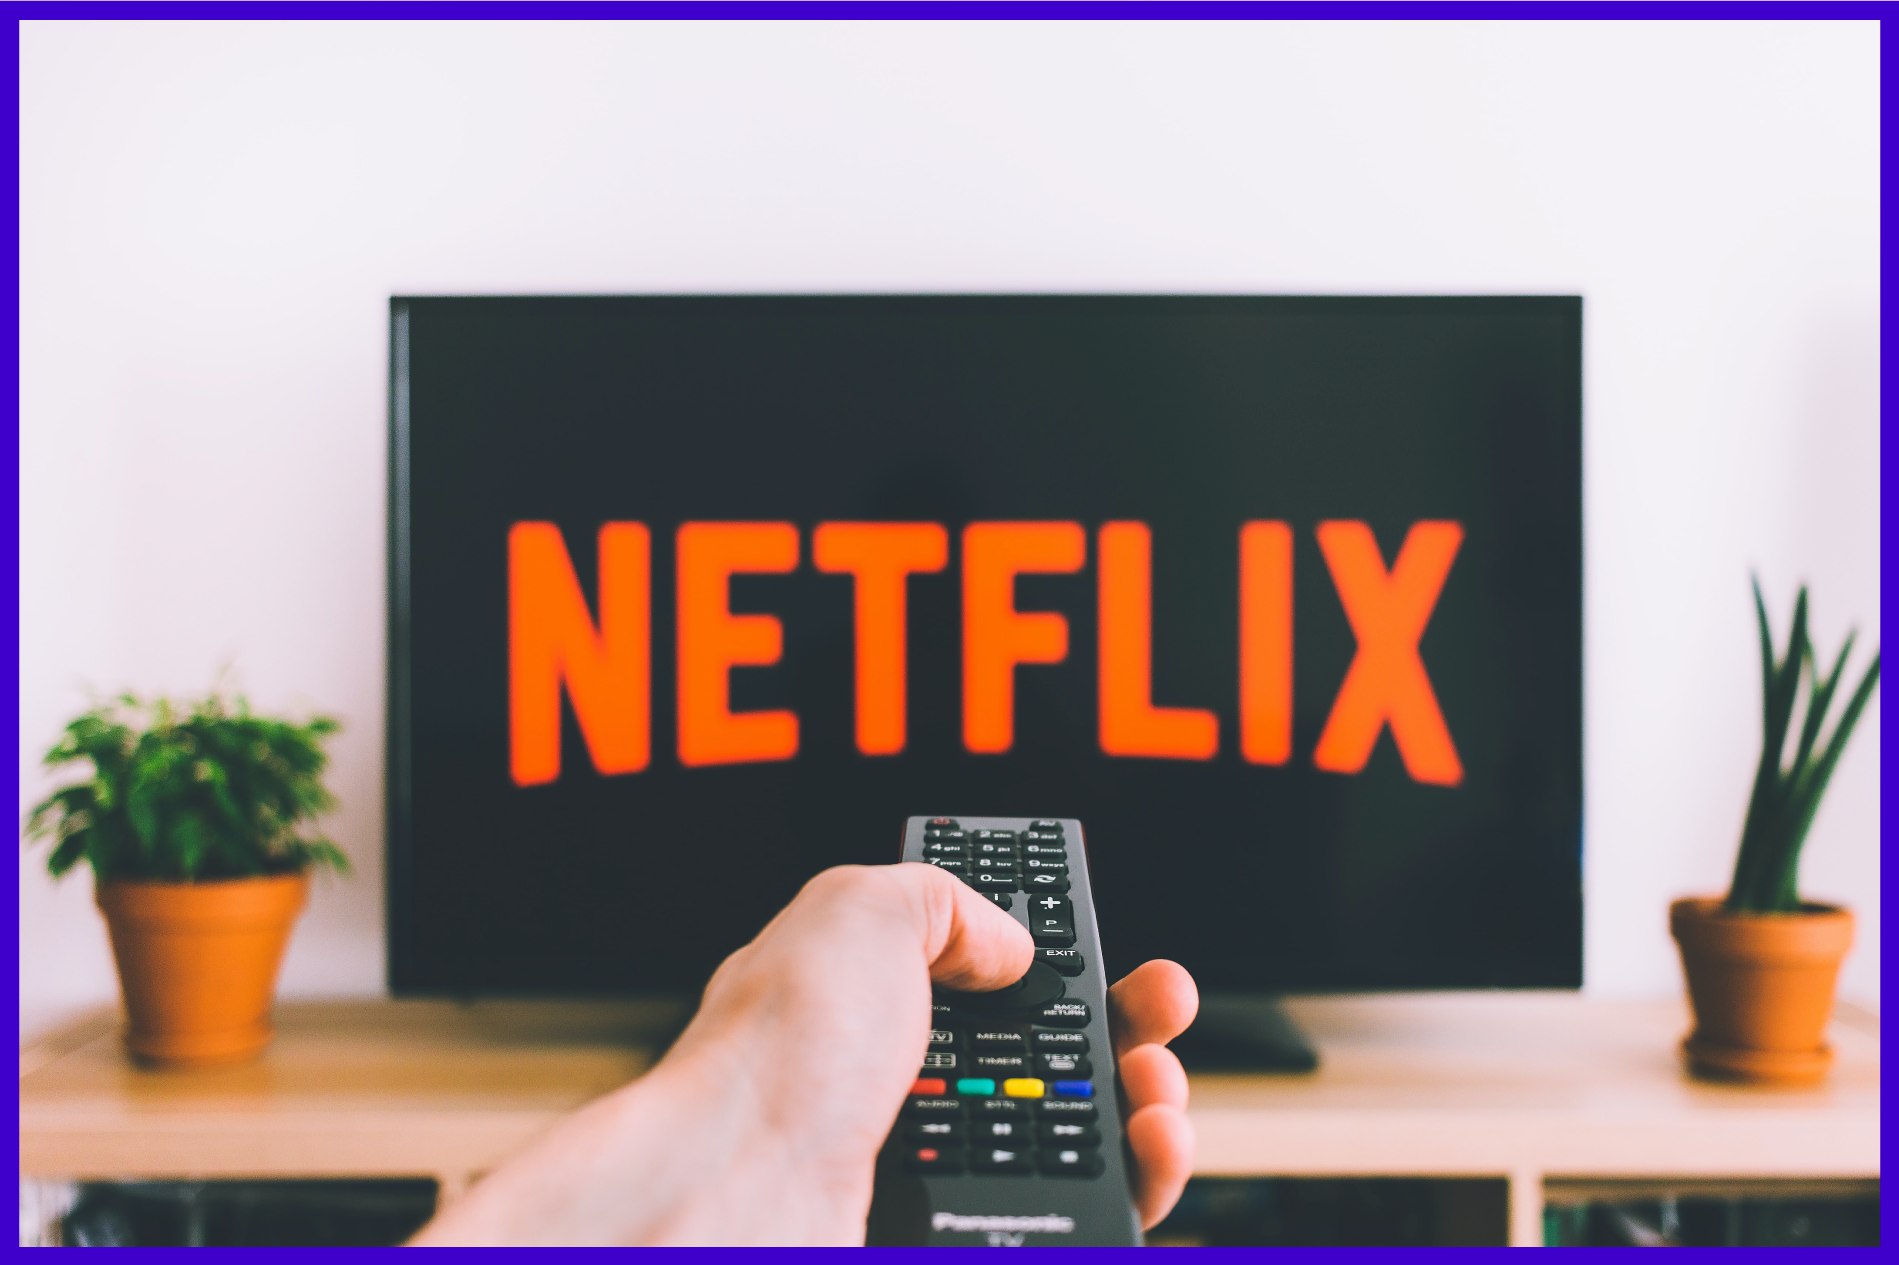 The Netflix Effect shows the power of personalization for engagement & can be a lesson for esports fan engagement